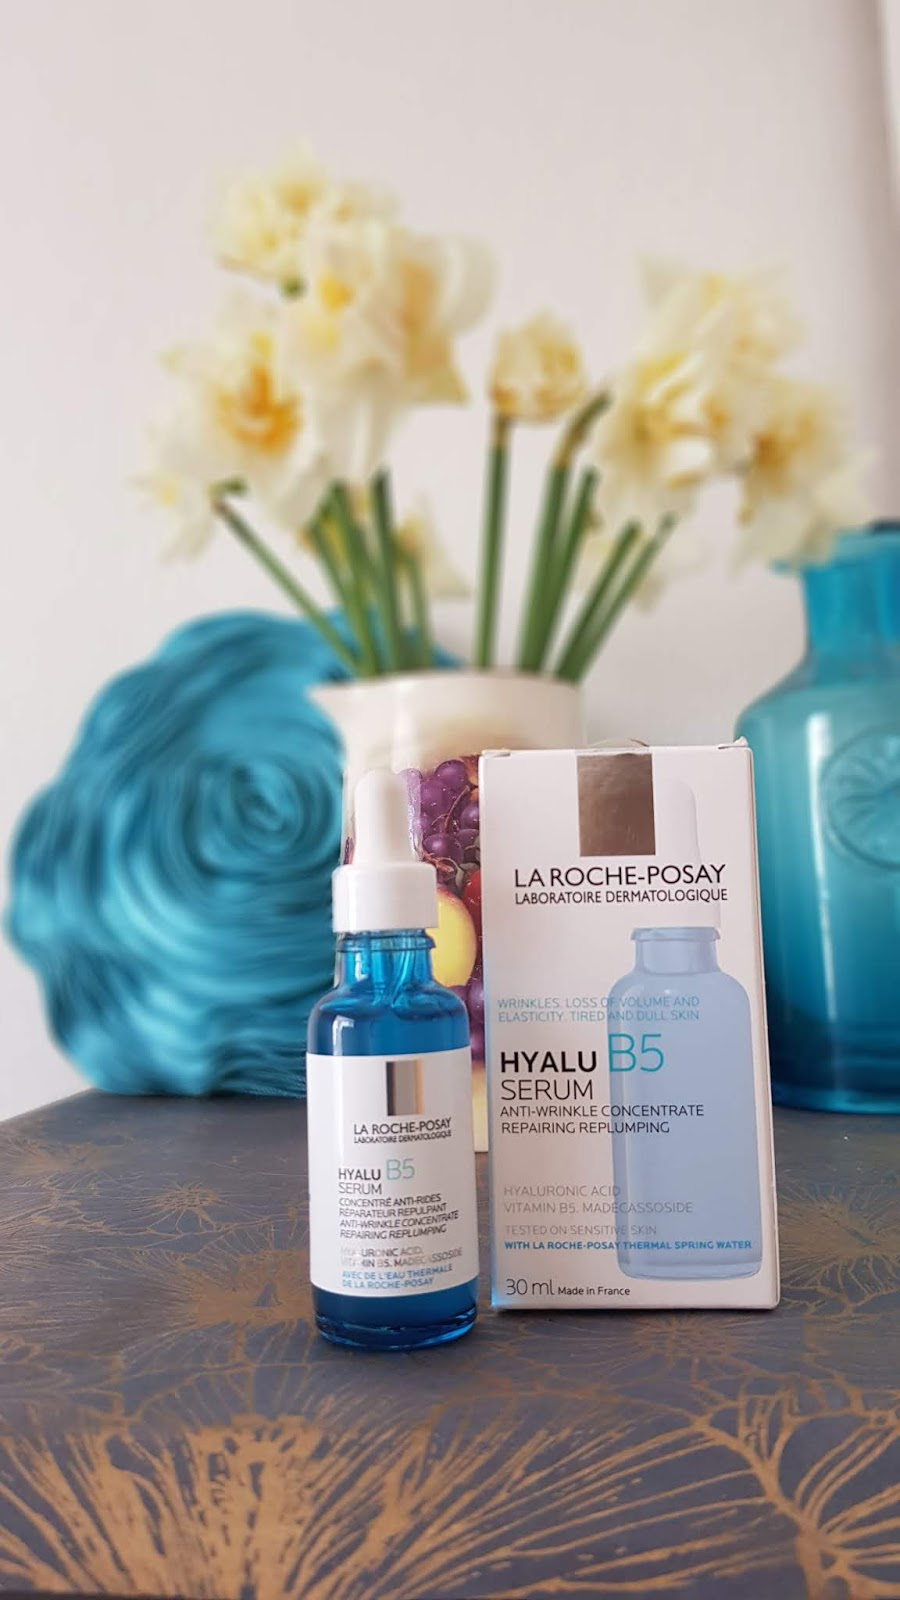 La Roche-Posay's Hyalu B5 serum, reviewed by beauty blog Is This Mutton?